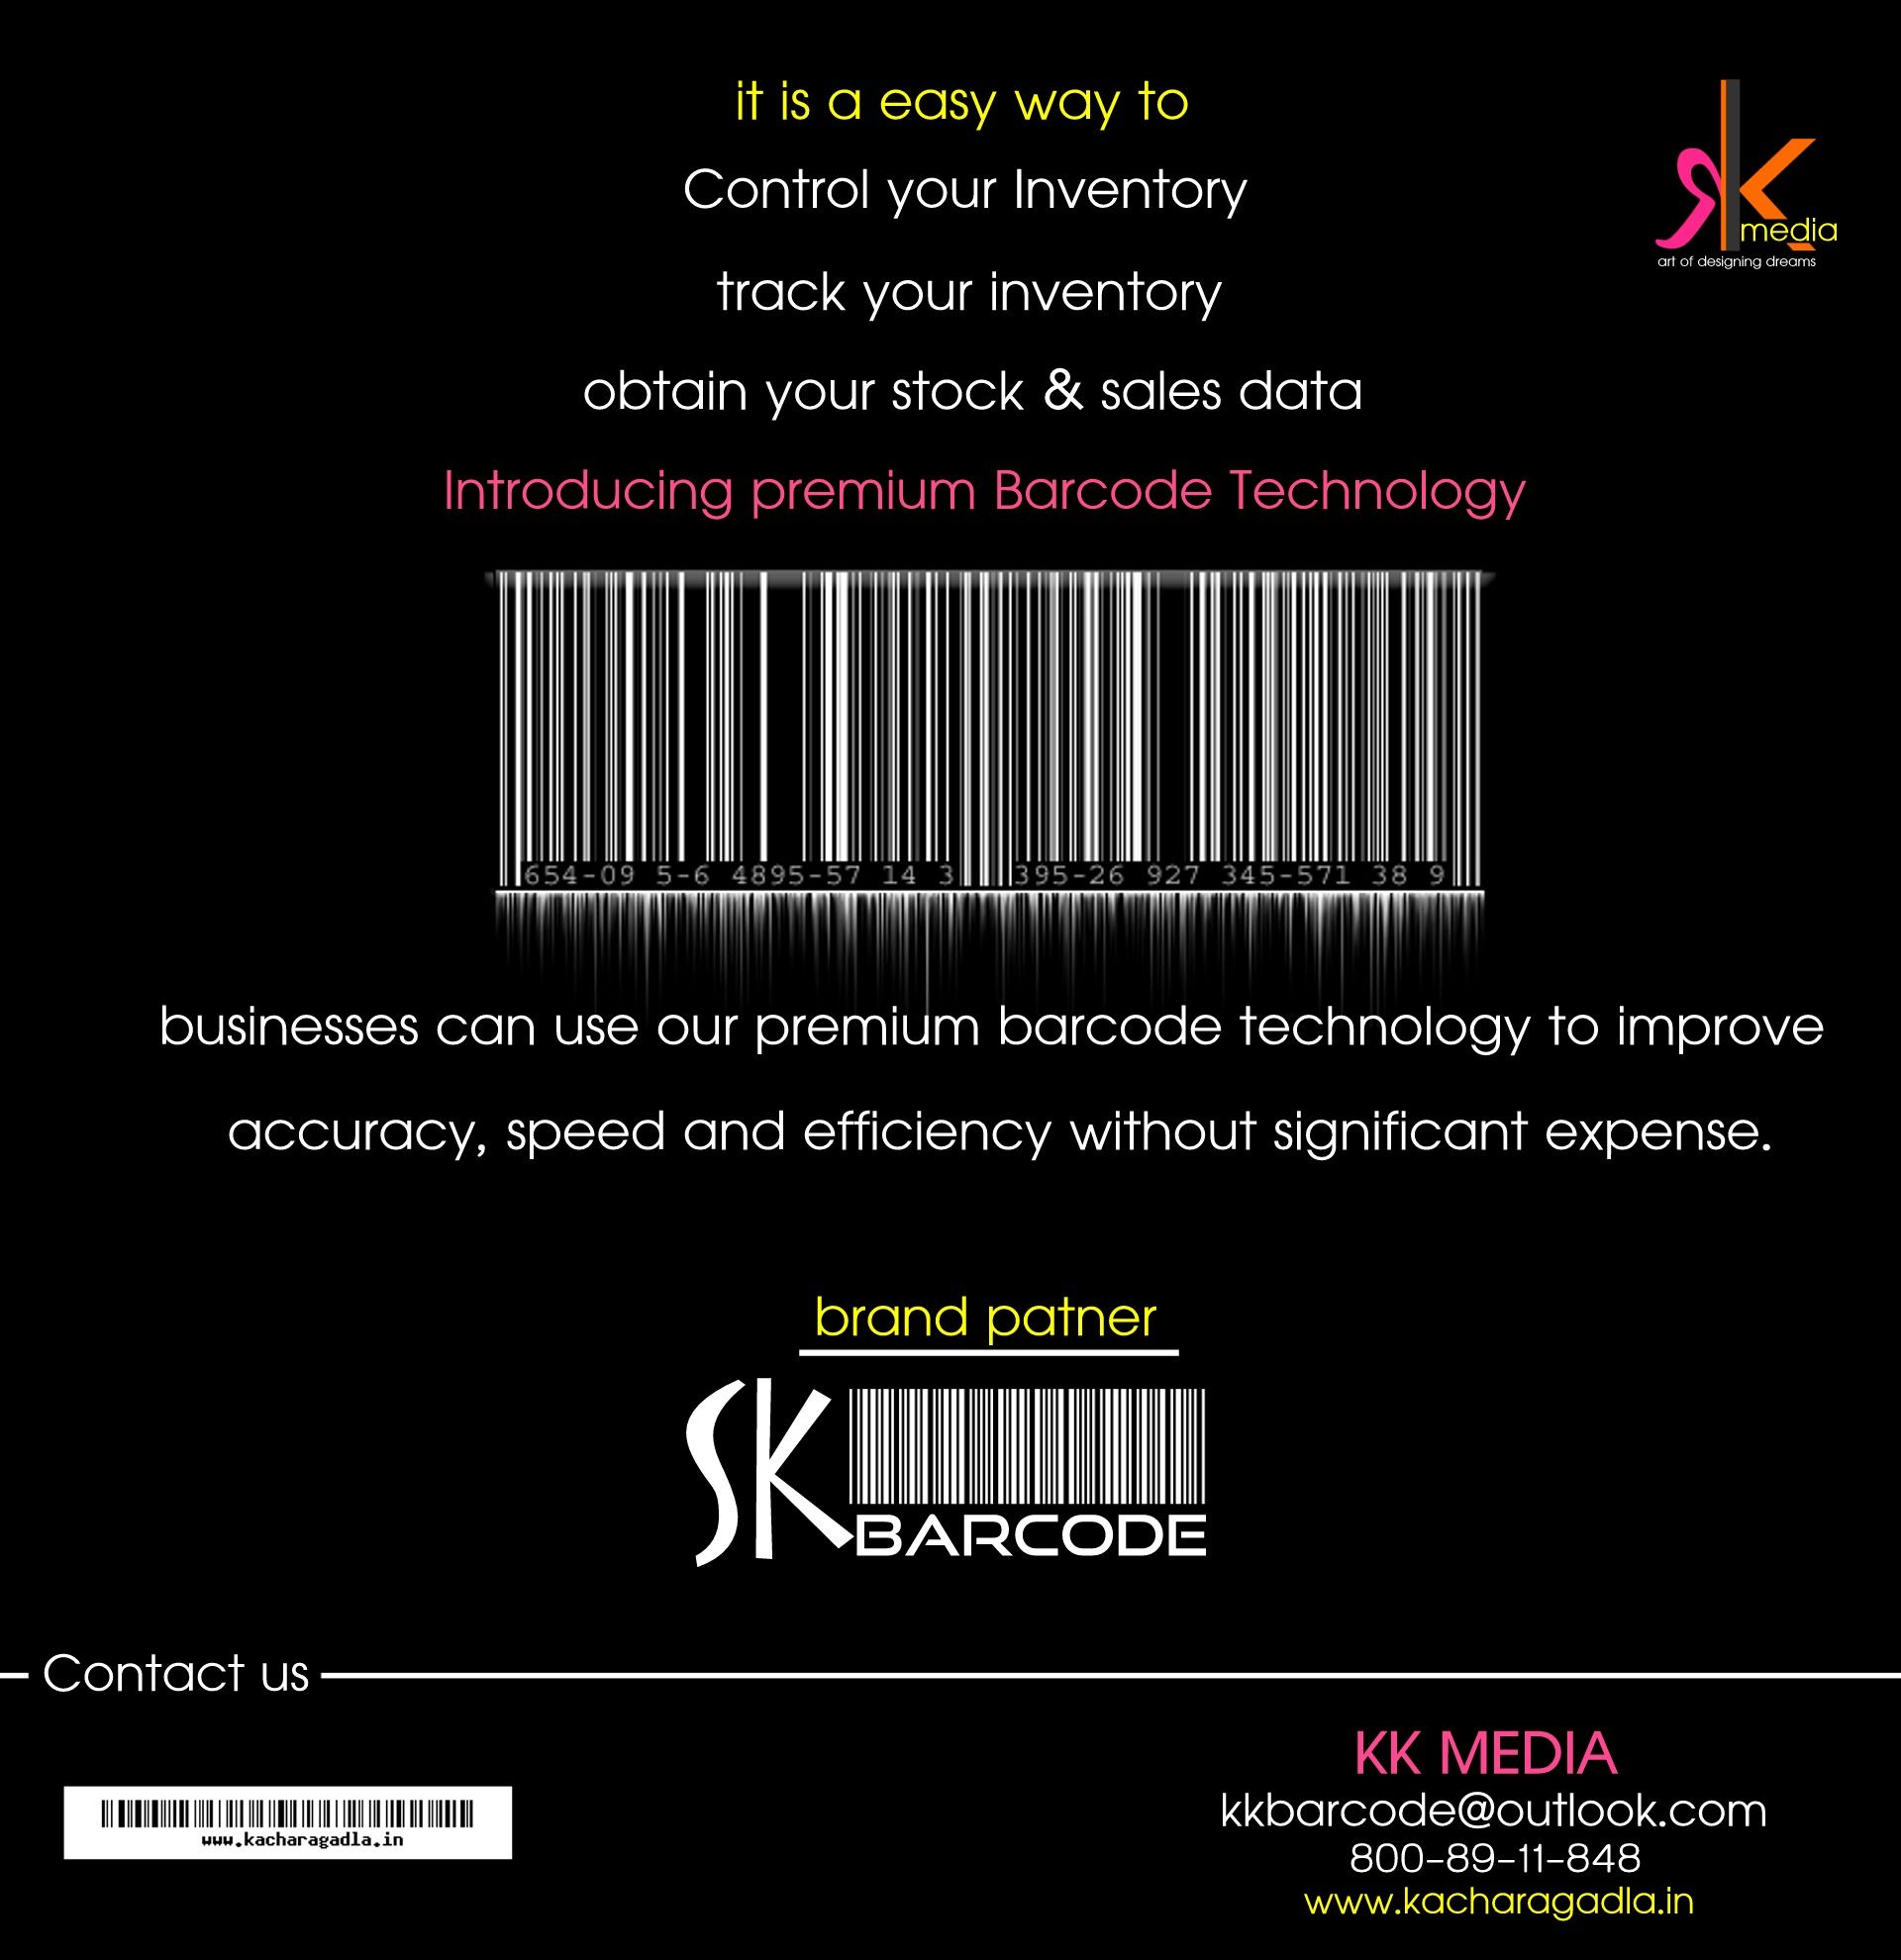 Offering premium barcode printing solutions with challenging prices